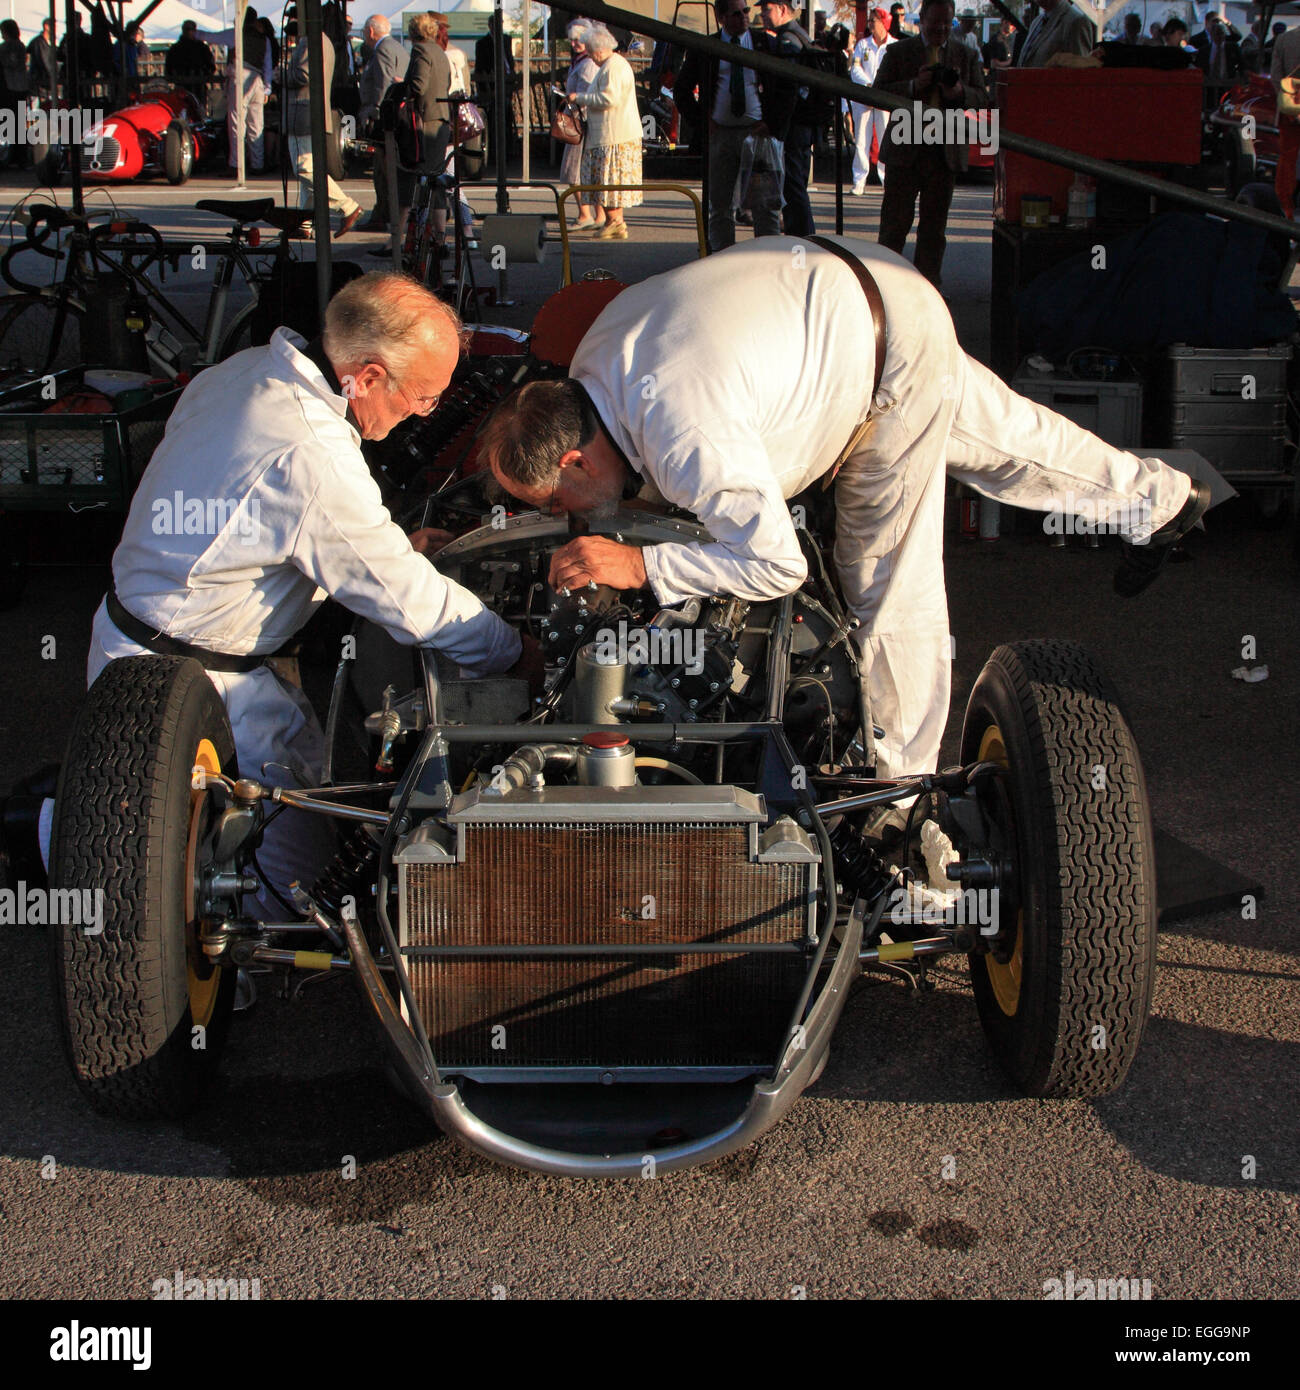 1959 Lotus-Climax 16 having last minute adjustments made in the paddock / Goodwood Revival / Goodwood / UK Stock Photo